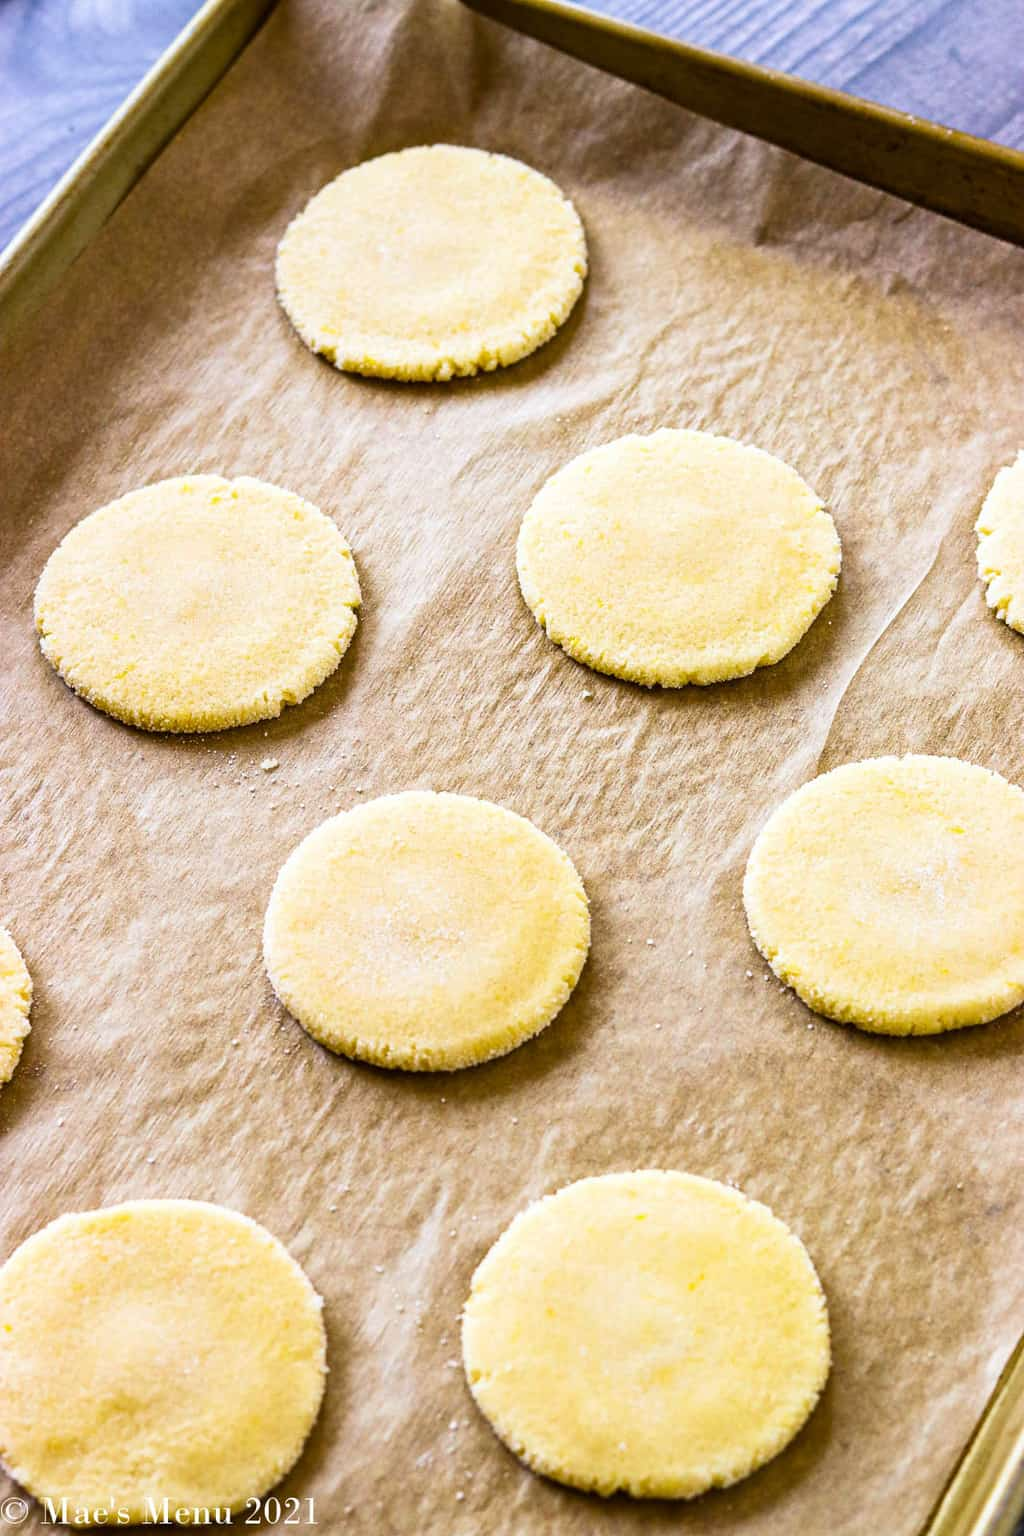 Flattened rounds of cookie dough on a parchment paper lined baking sheet